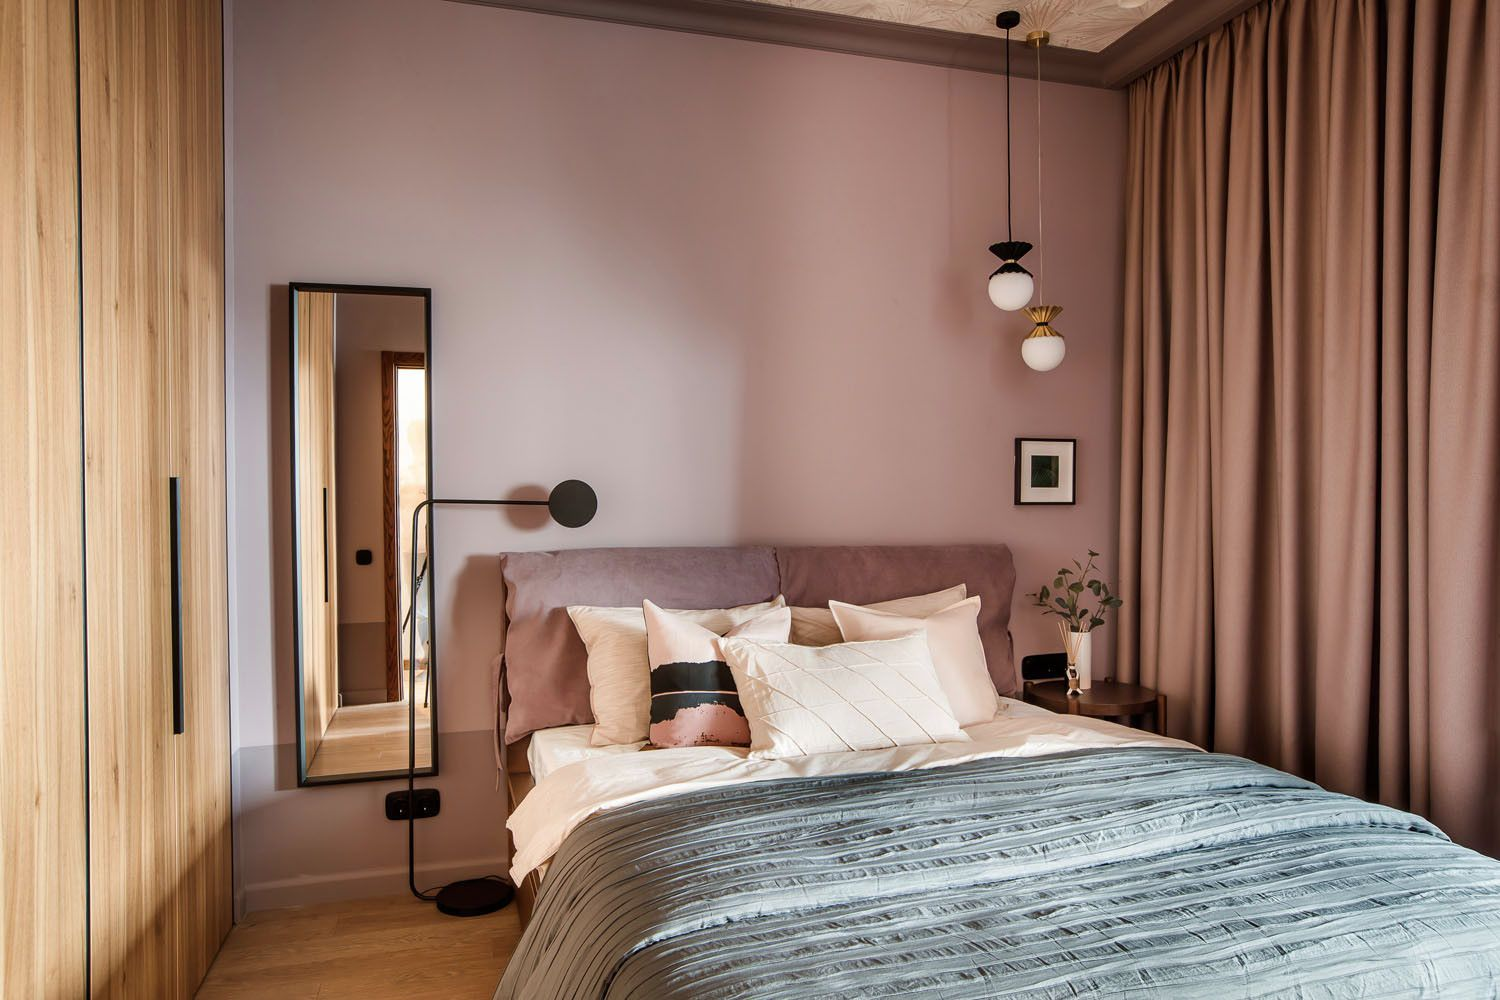 Pastel pink and woodsy cabinet give this modern Scandinavian bedroom a different visual appeal